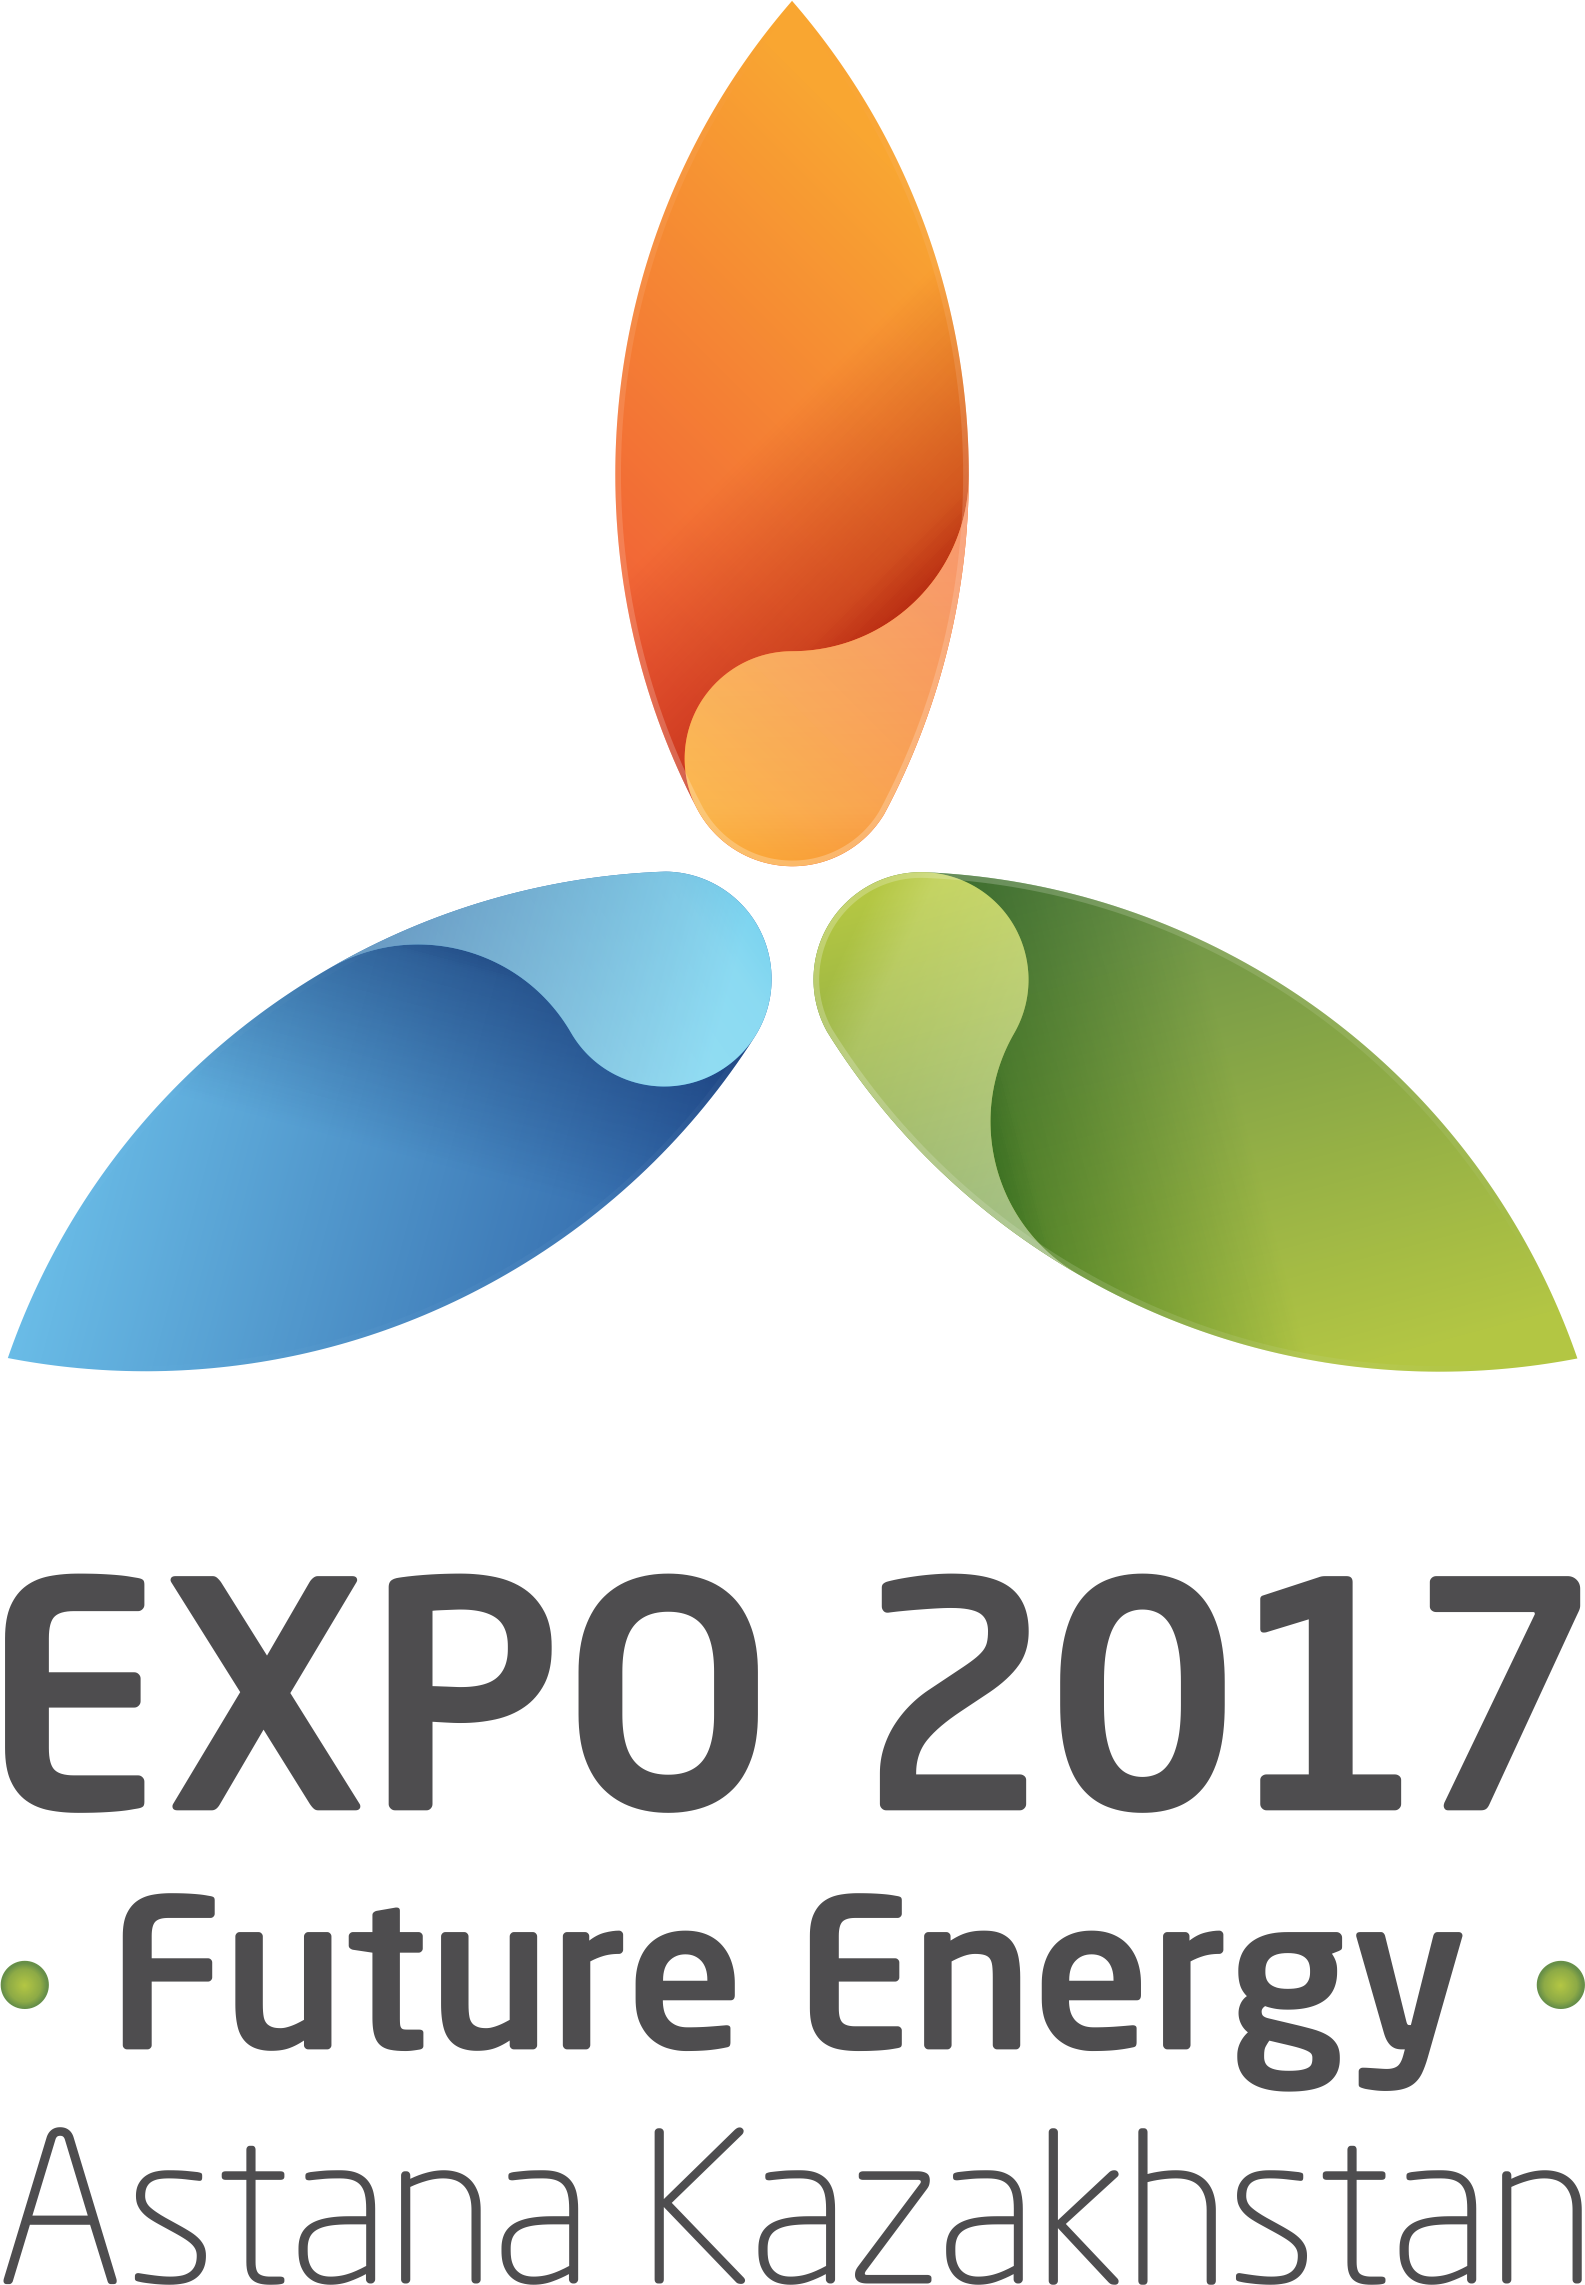 205,561 people visited the EXPO-2017 Exhibition in the first week of its operation.